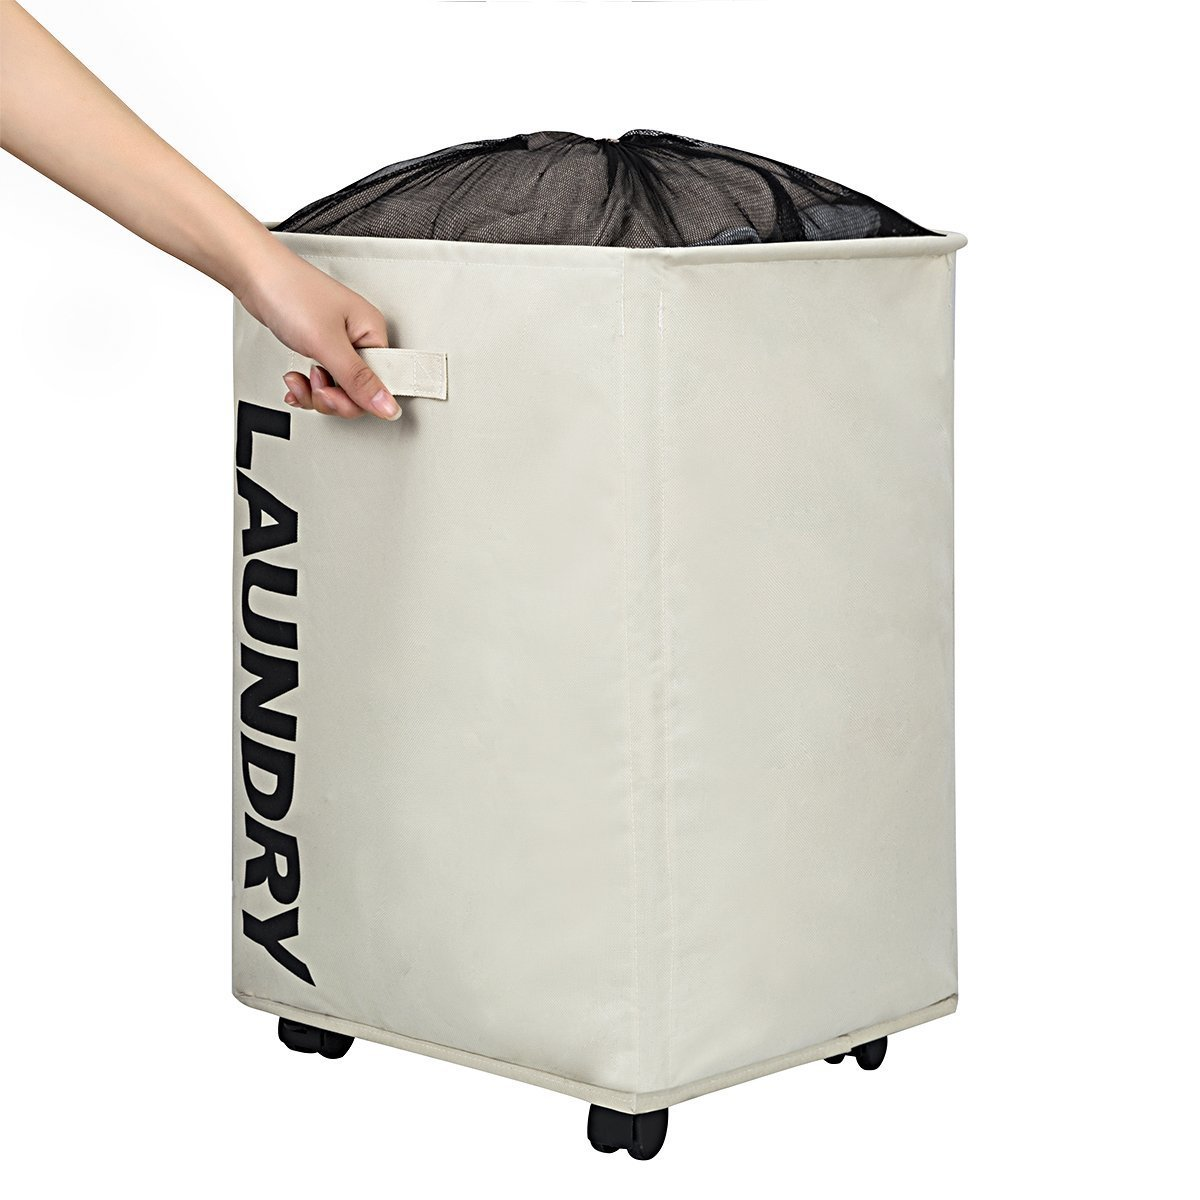 WISHPOOL Large Rolling Stand Folding Slide Laundry Basket Square Collapsible Waterproof Dirty Laundry Hamper Bin Organizer Storage with Mesh Wheels (Beige)